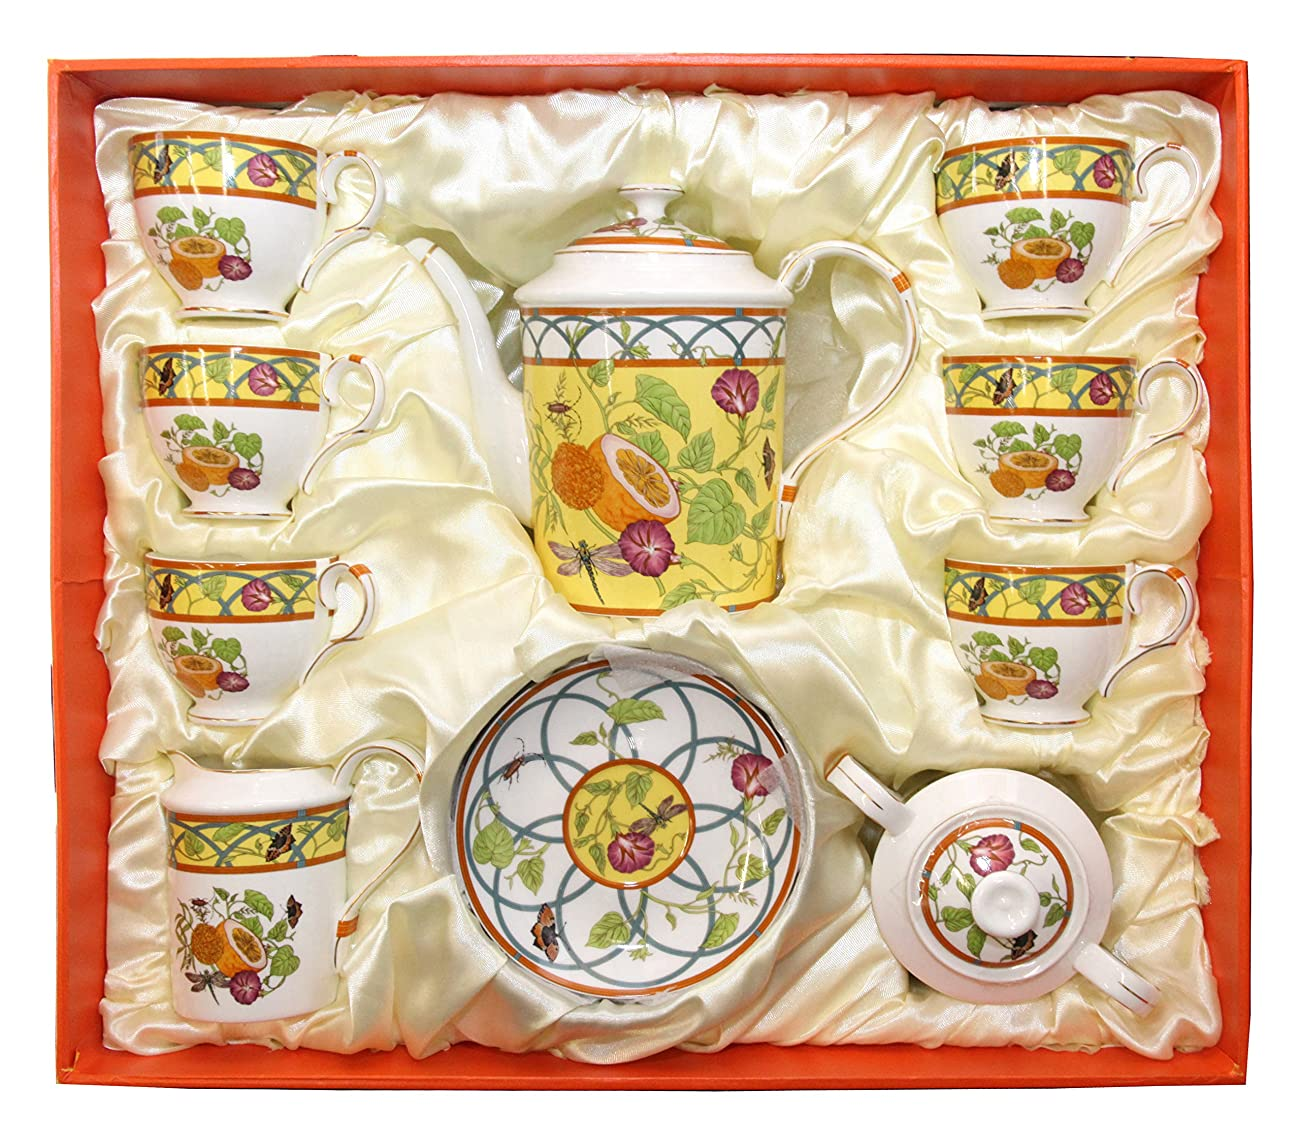 Royal Porcelain 15-Piece Antique Citrus Yellow Vintage Dining Tea Cup Set, Service for 6, Handmade & Hand-Painted, HQ Bone China 5